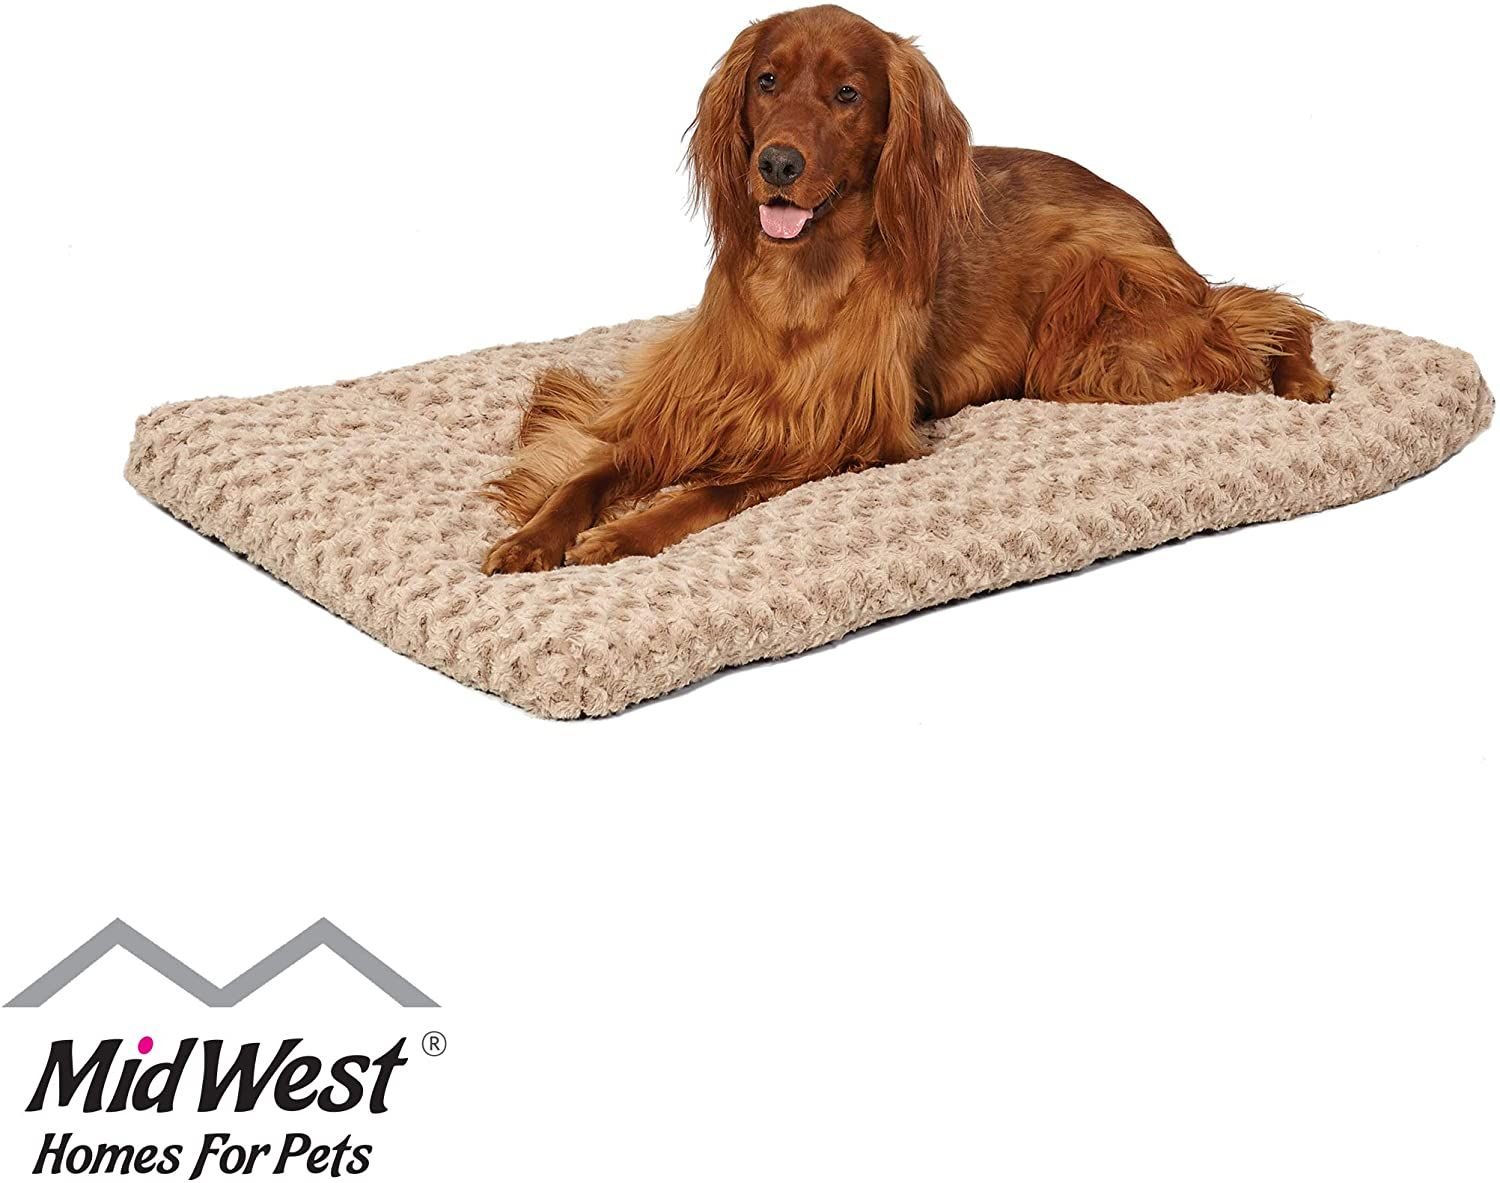 Ultra Plush Dog Bed Mocha Ombre Swirl Deluxe Dog Bed Works Great As A Stand Alone Pet Bed Or Can Be Used Inside A In 2020 With Images Plush Pet Bed